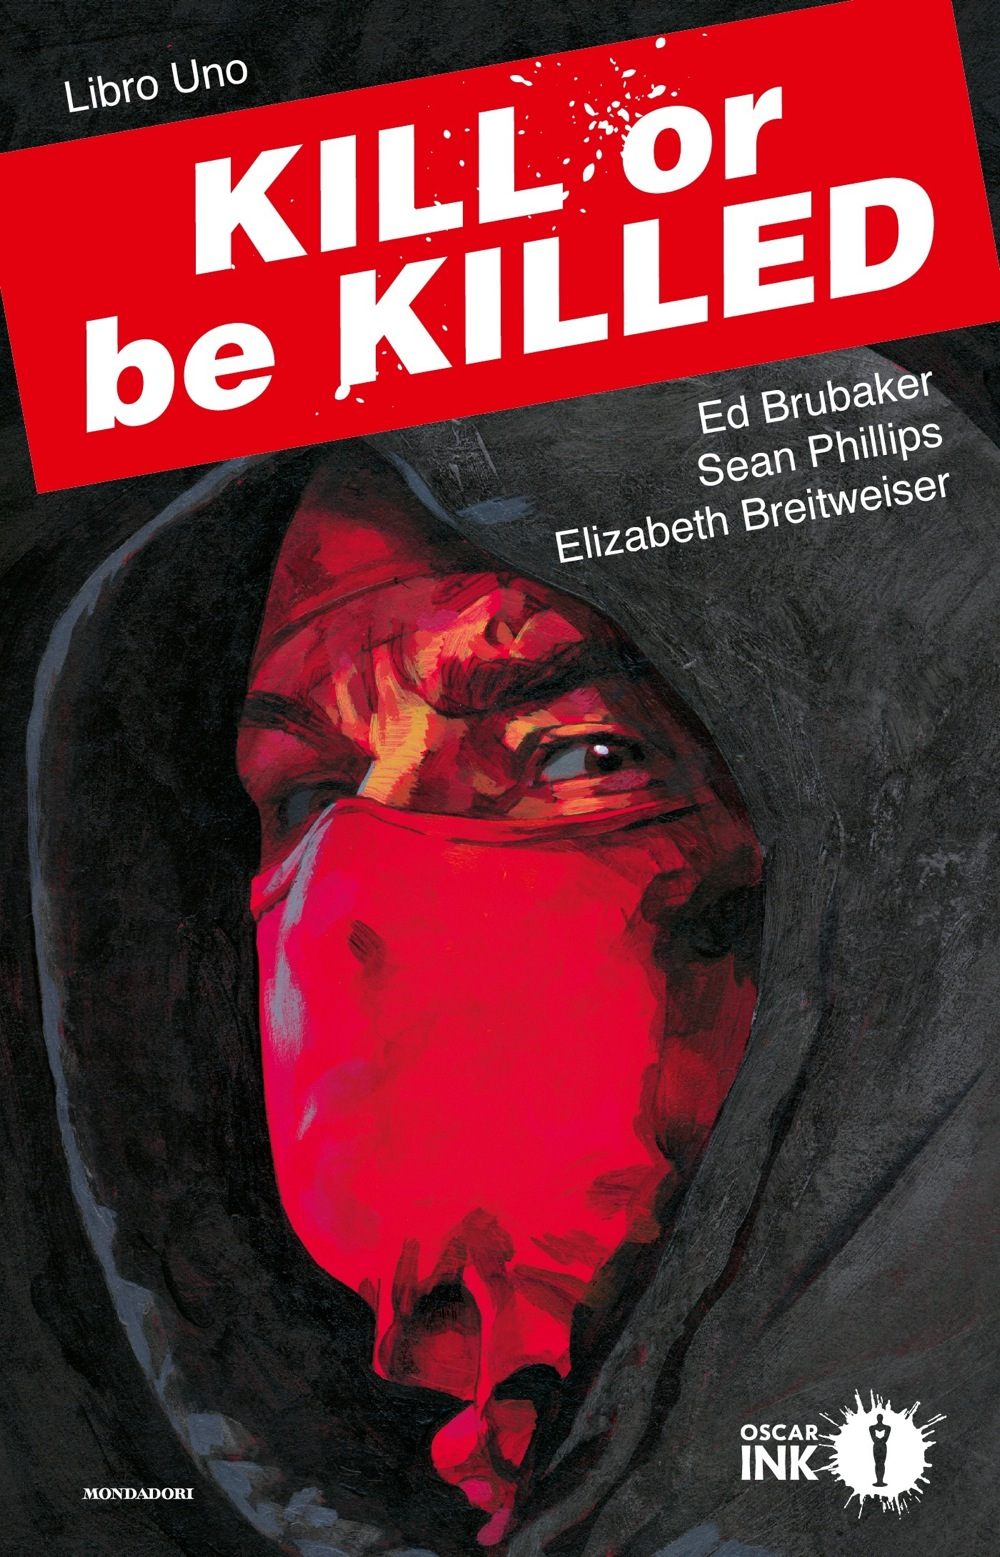 Kill or be killed - Libro uno